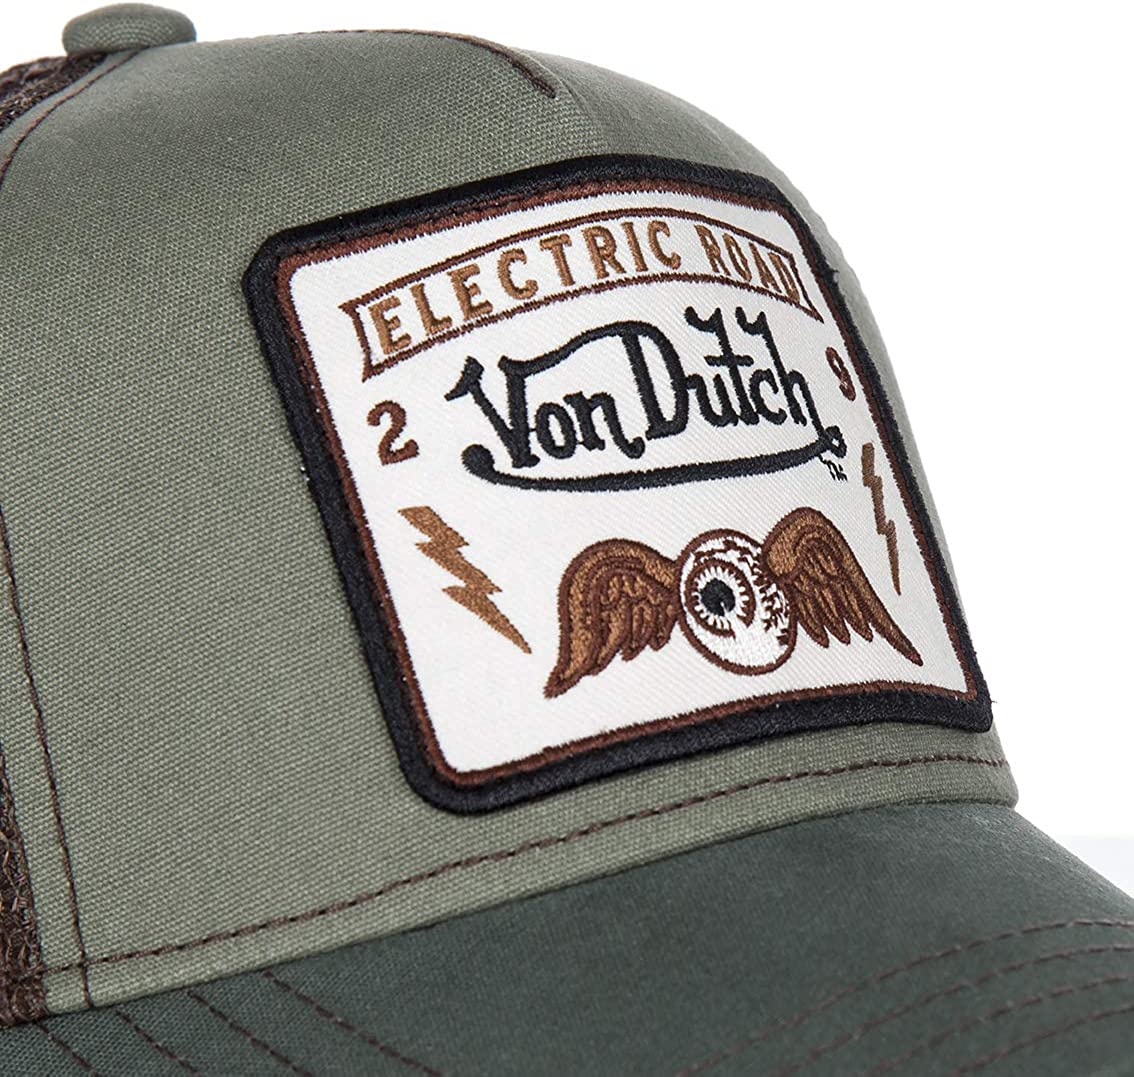 Von Dutch - Gorra Square6B - 181013 SQUARE6B - Verde, U, One Size ...